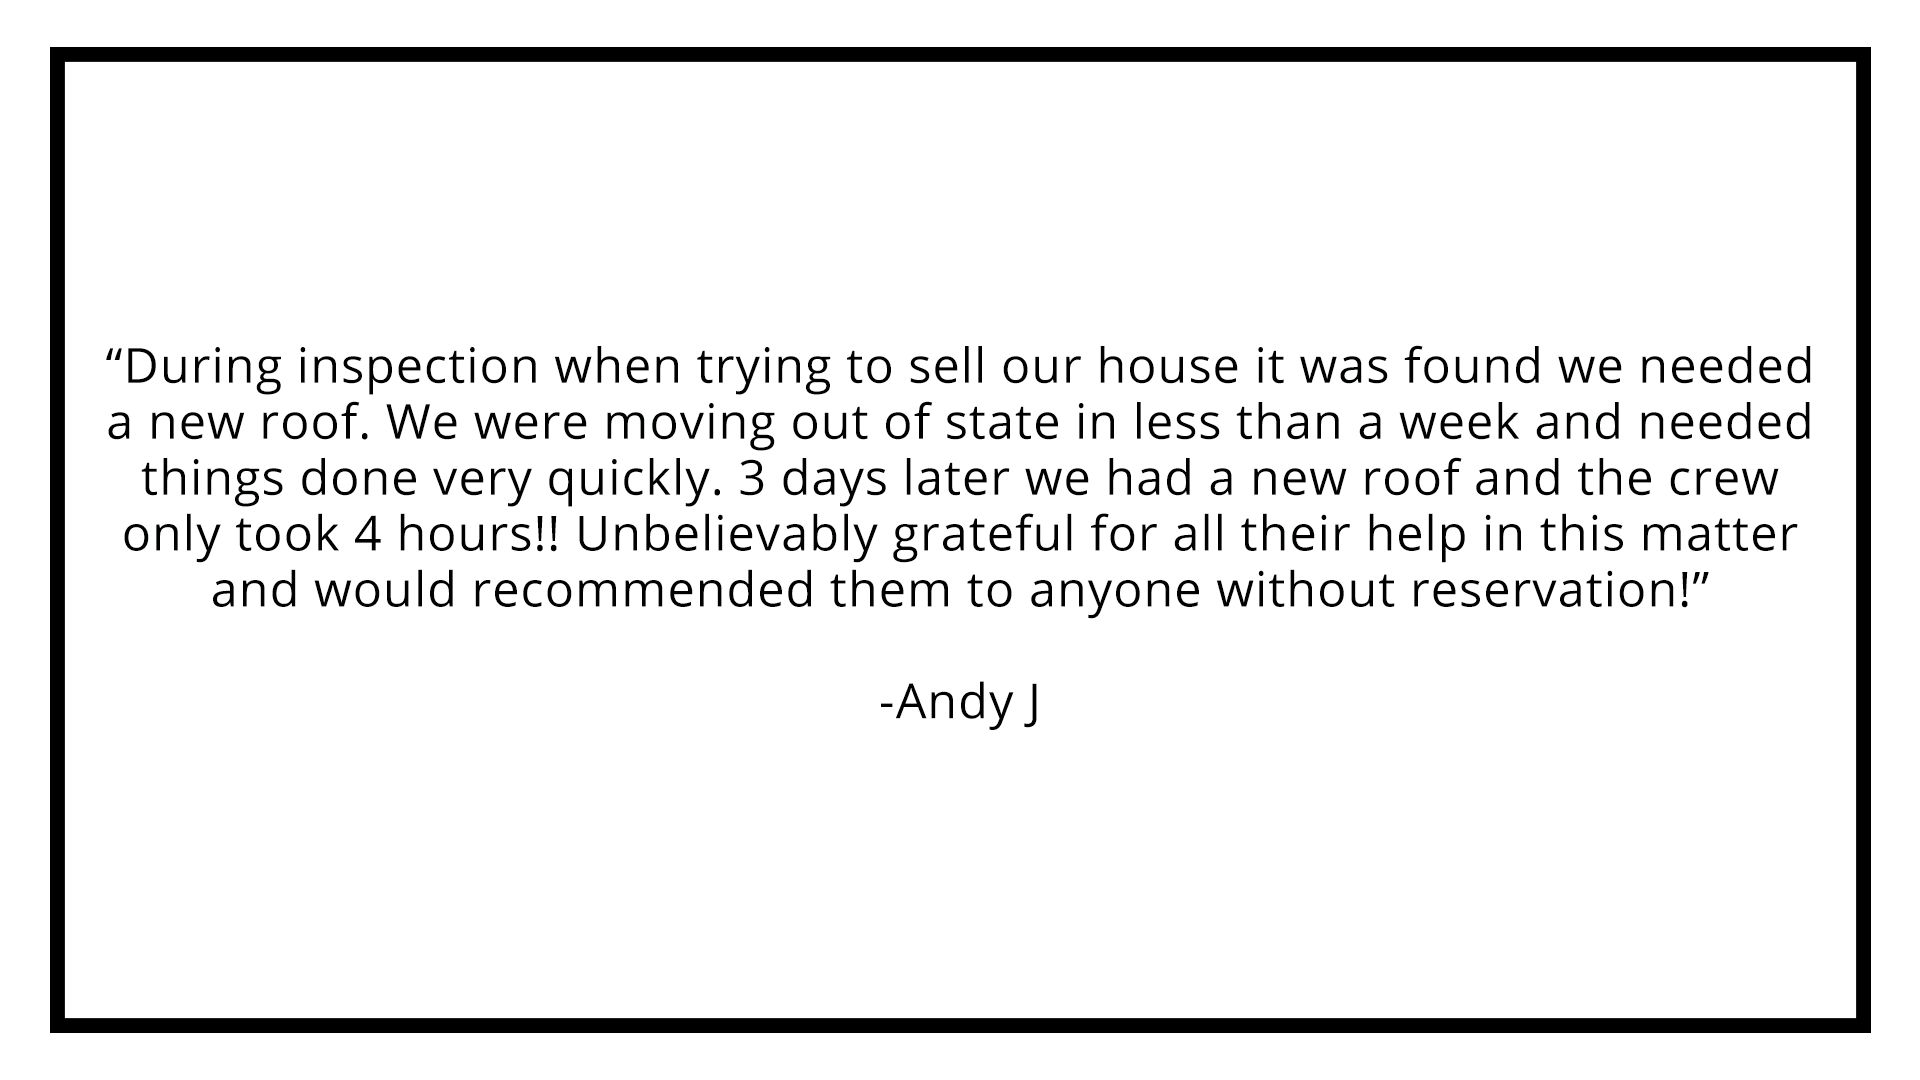 AndyJ_Quote.png